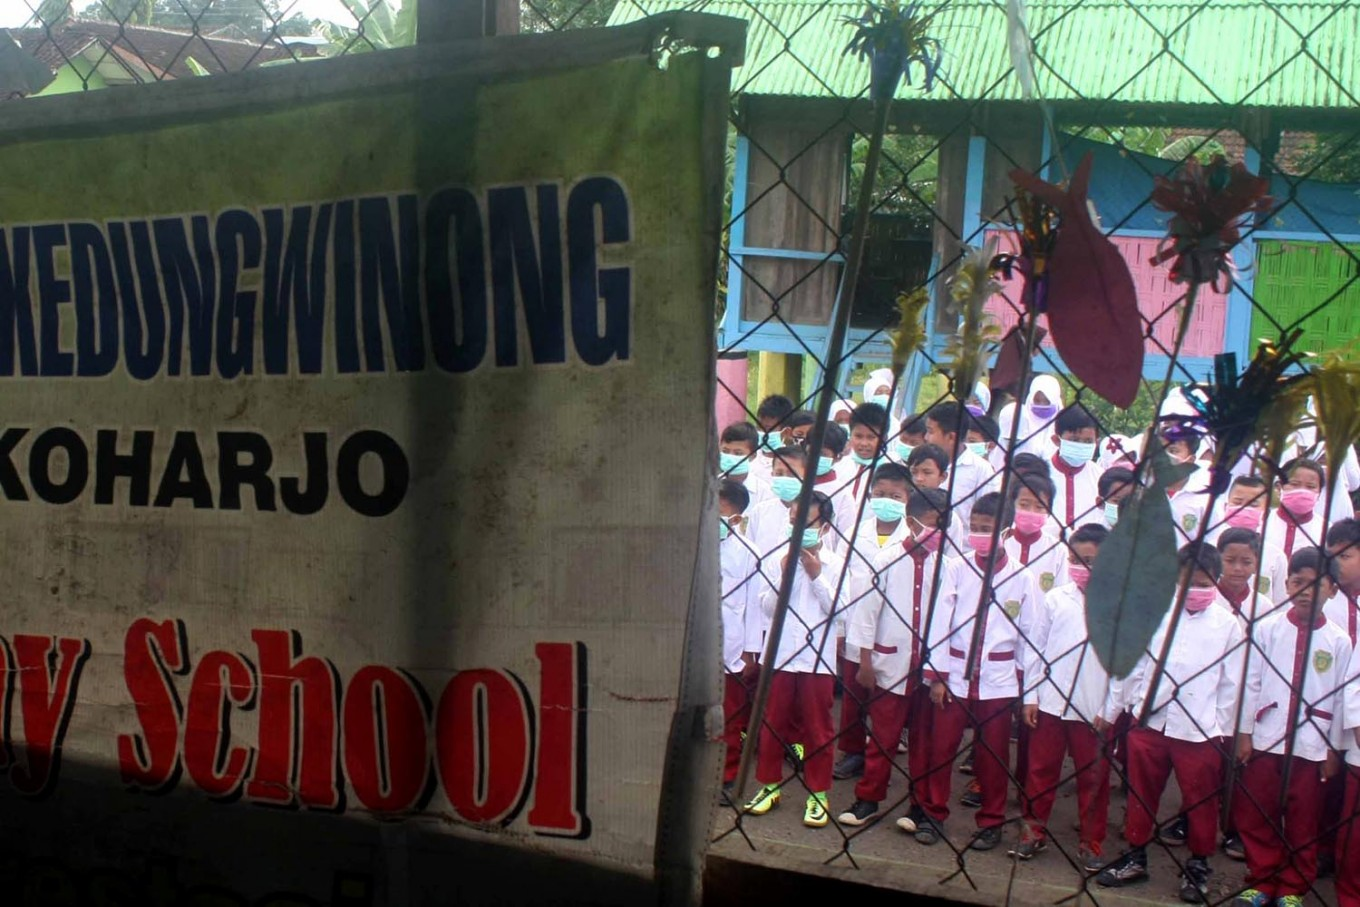 Students gather in the schoolyard to join in the flag hoisting ceremony. JP/Maksum Nur Fauzan